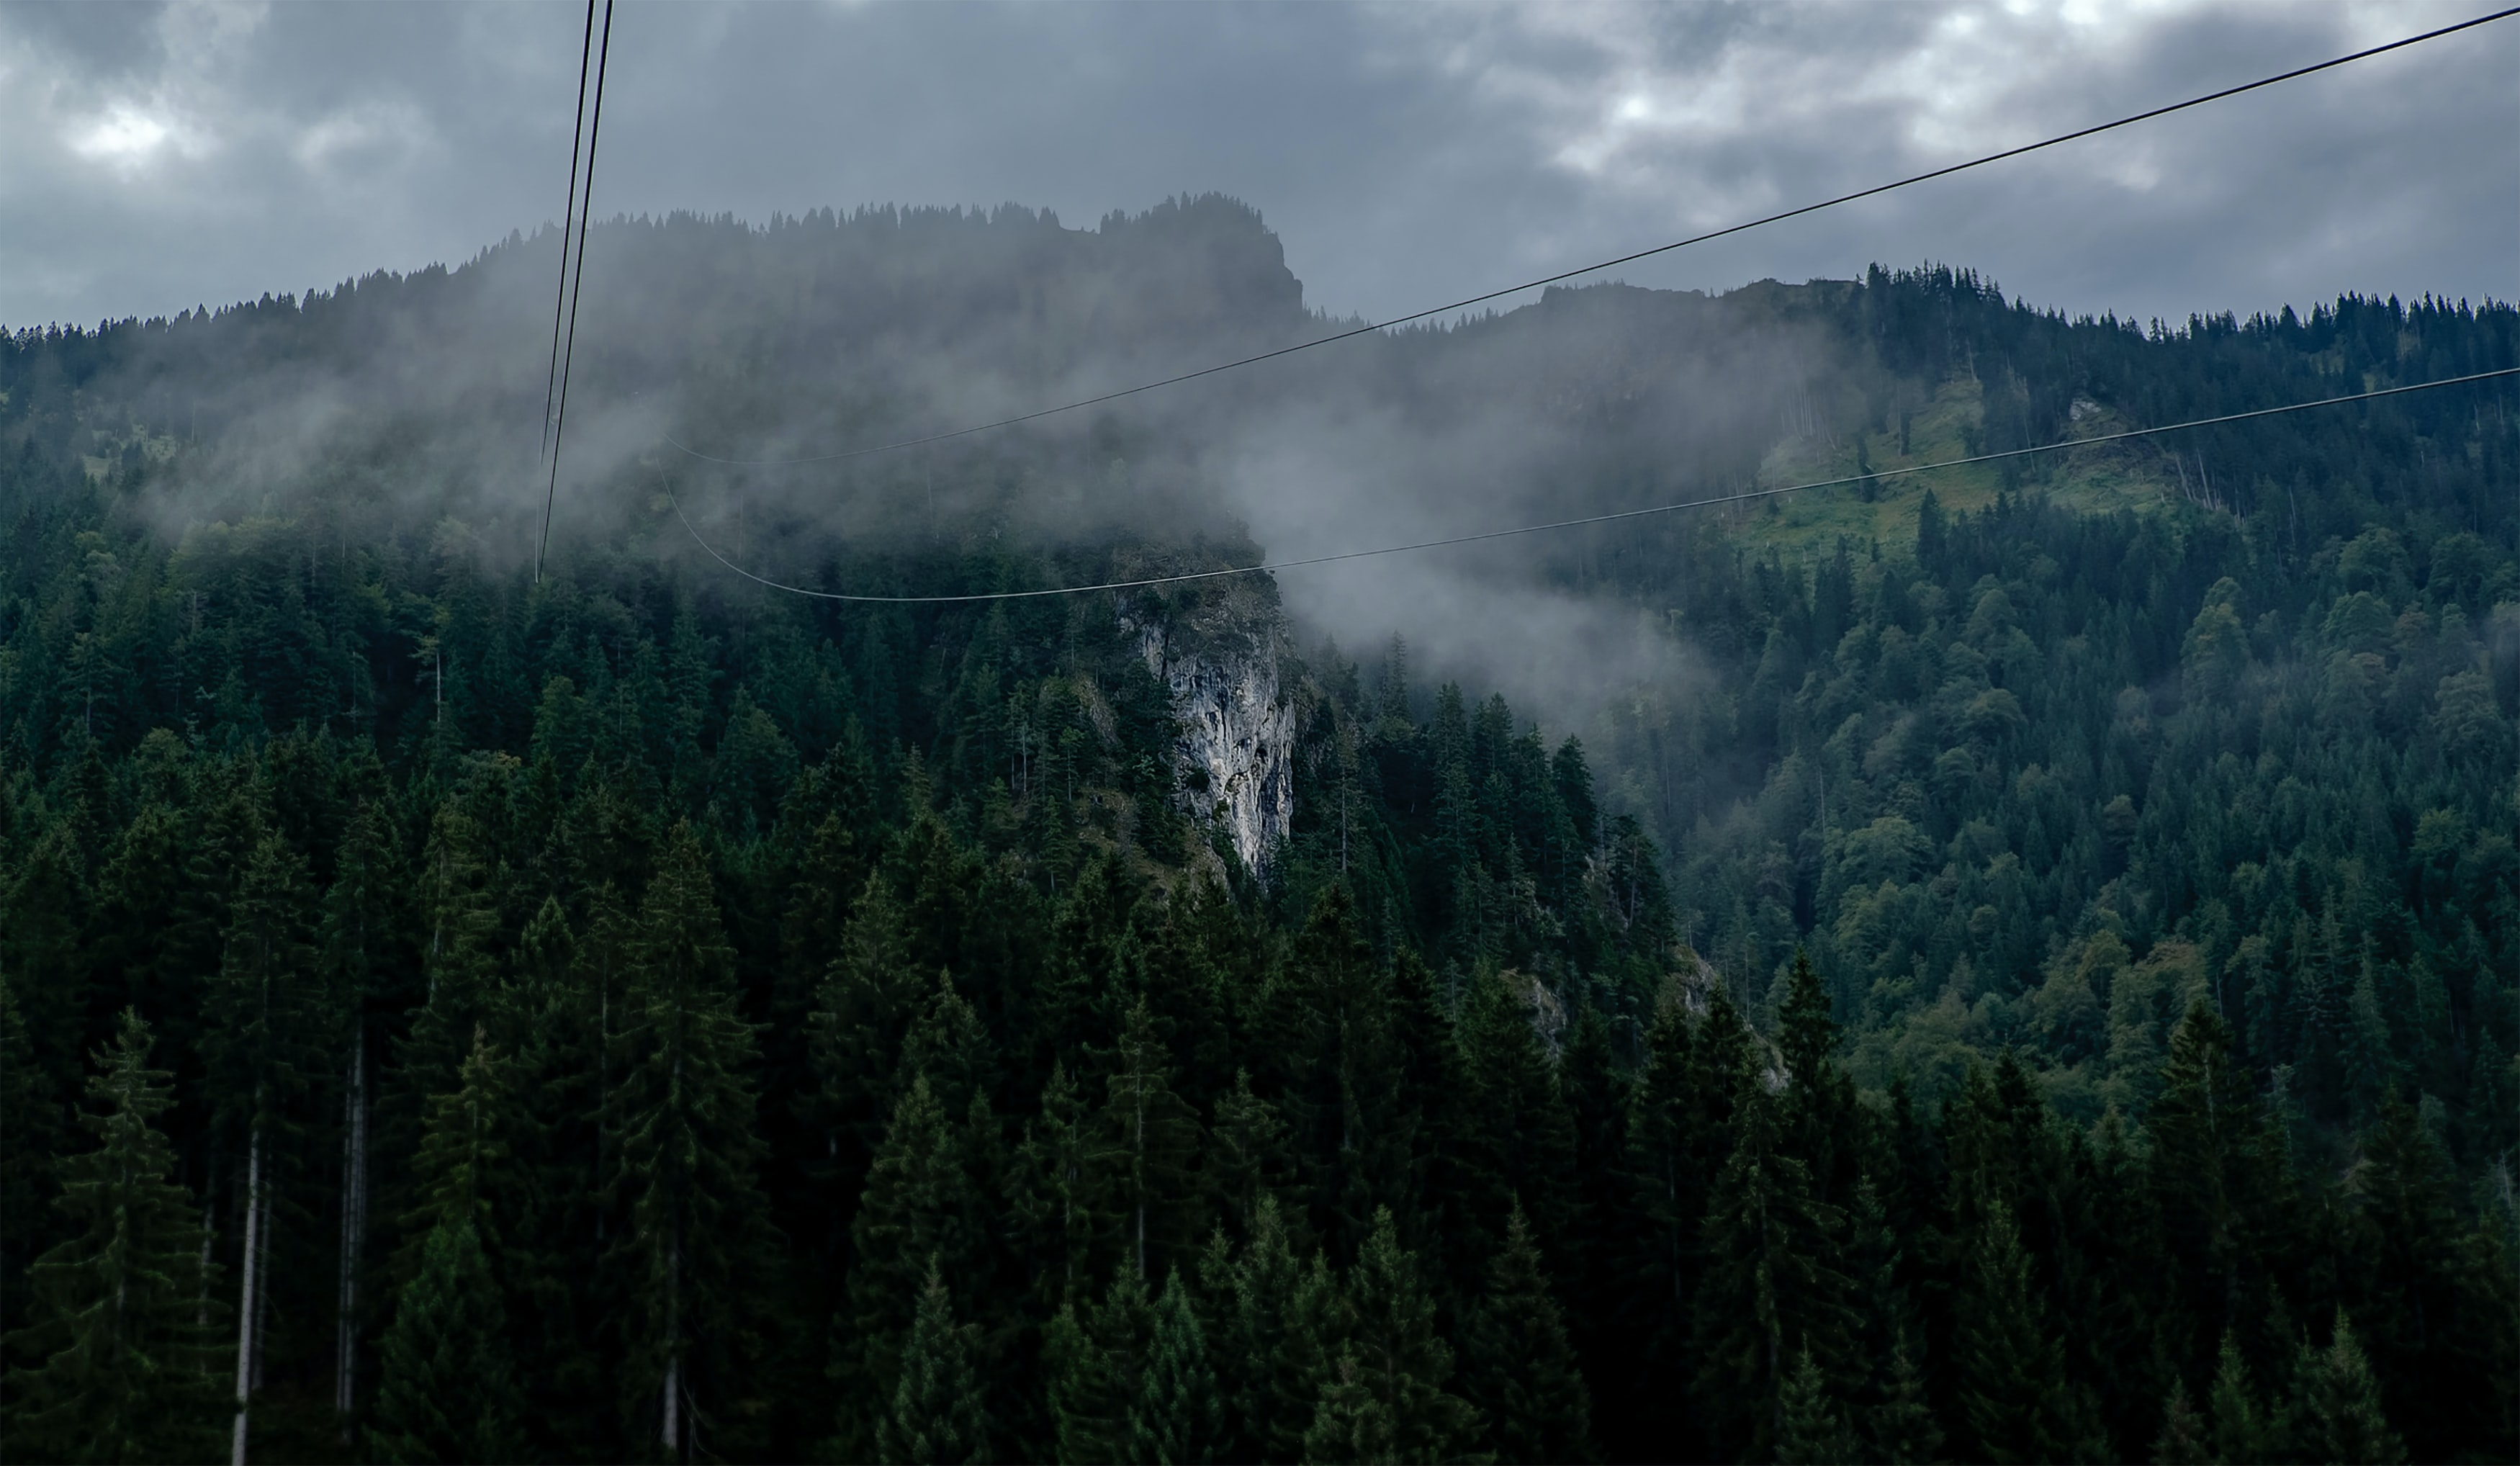 Wires hanging over a wooded mountain valley with rocky walls